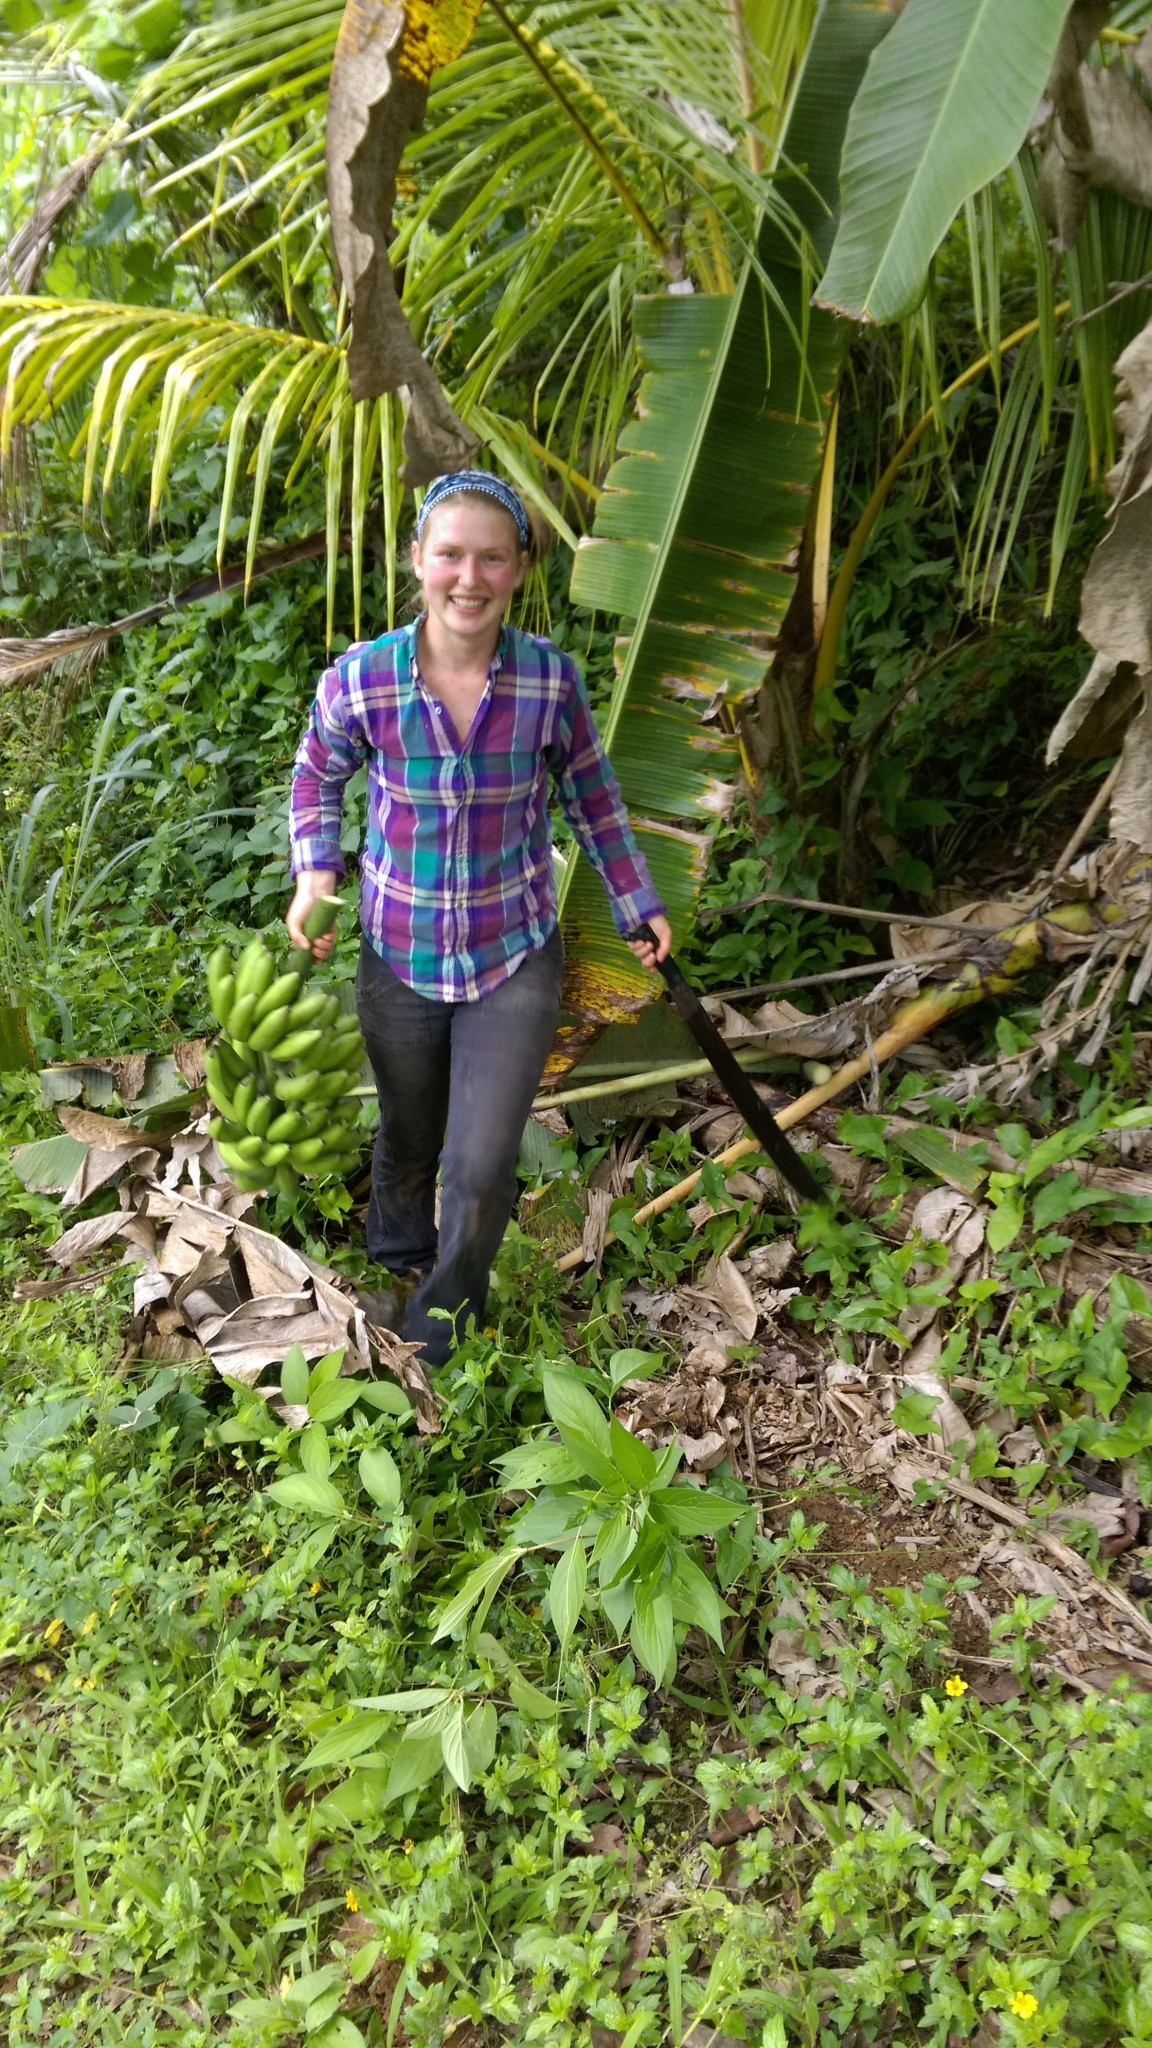 Young woman carries a machete and a stalk heavily weighted with green bananas.